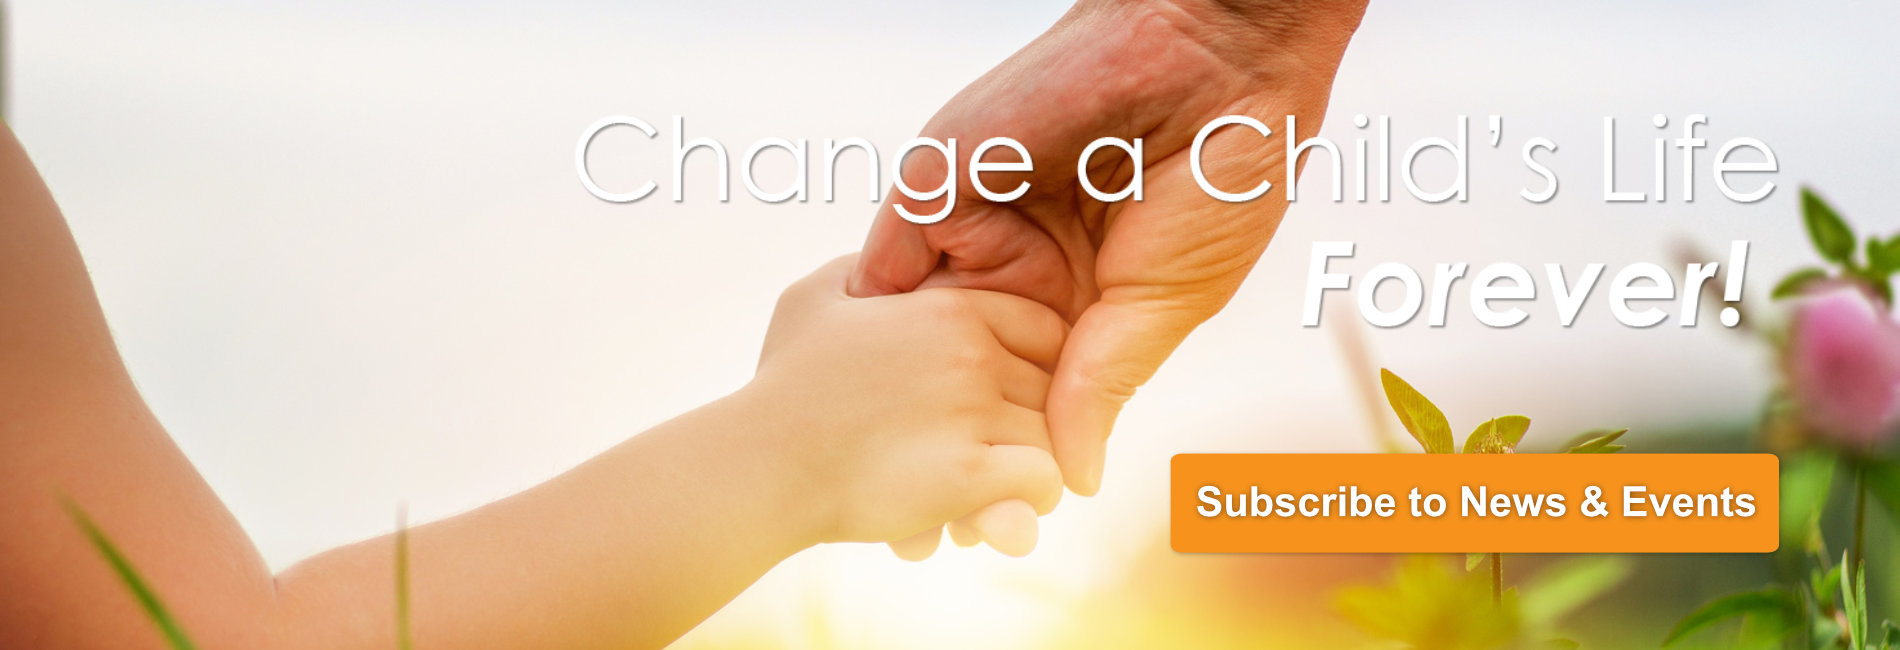 Change a Child's Life - Subscribe to News and Events